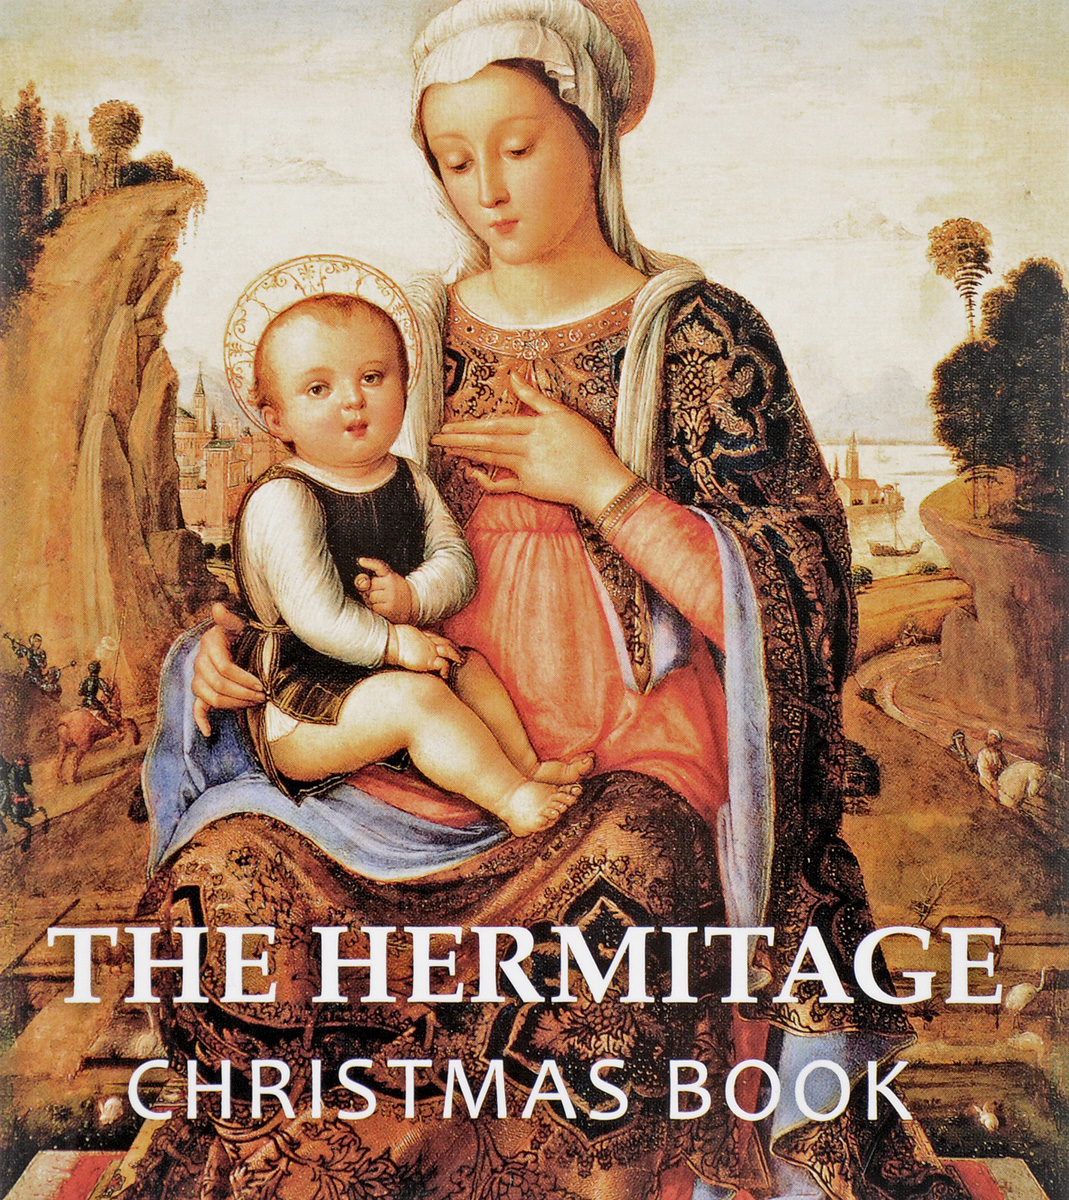 The Hermitage: Christmas Book dobrovolsky v the hermitage the history of buildings and collections альбом на английском языке